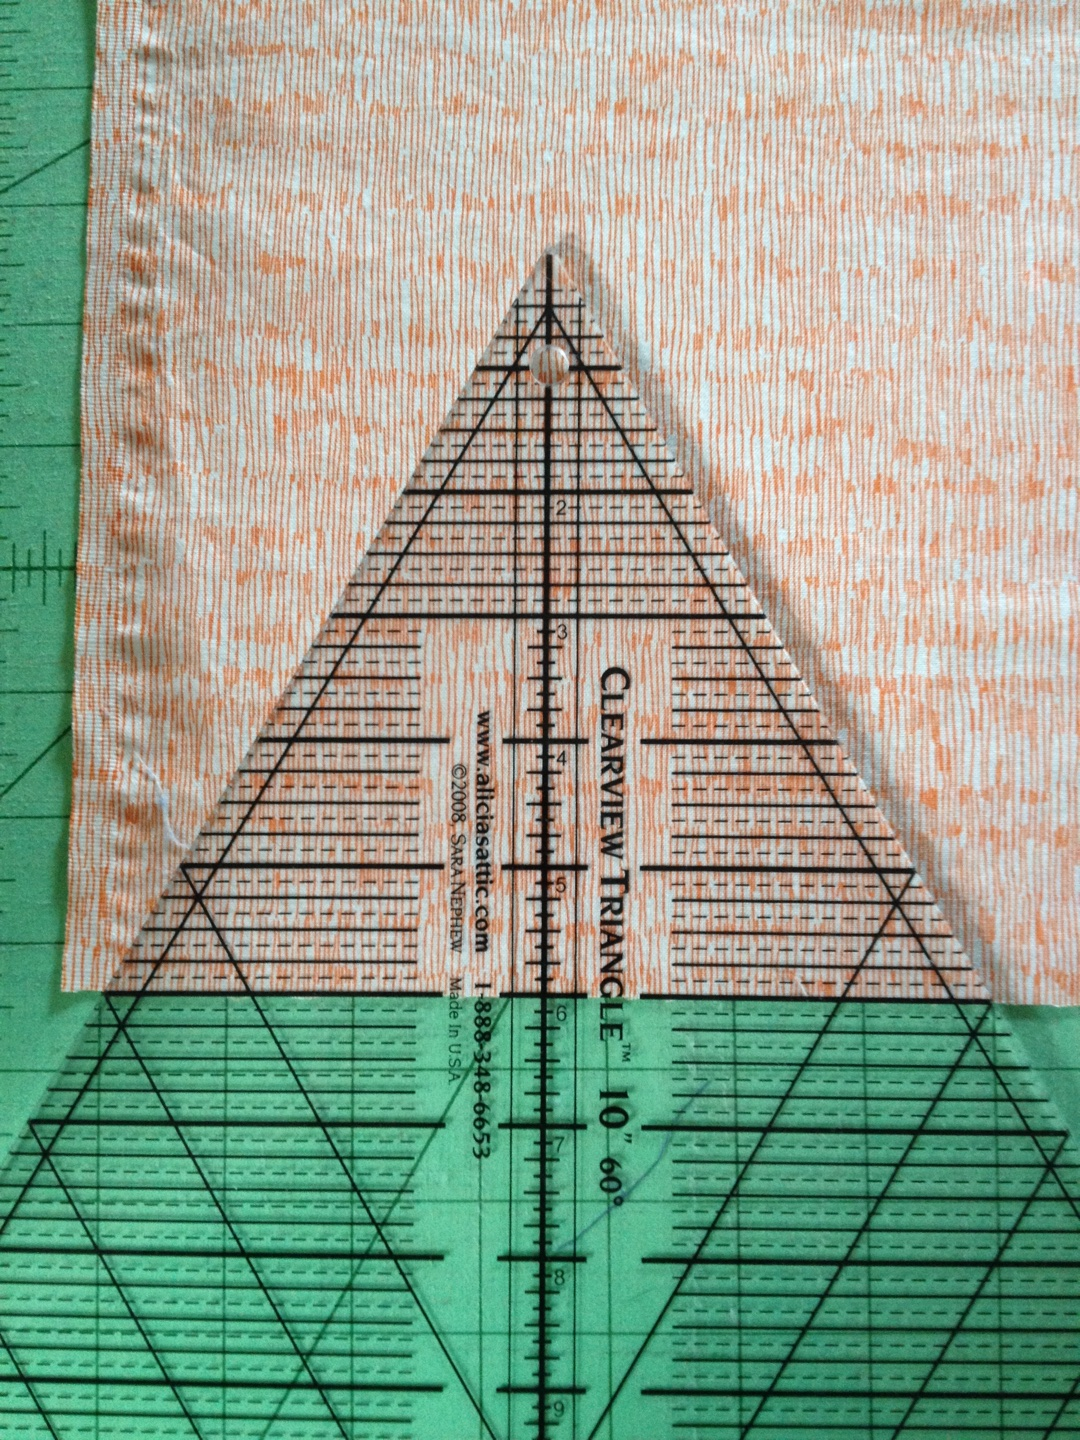 "On this ruler, the number at the base is actually the height of the triangle, so if you are going for 6"" tall, as I am, use the line for 6."